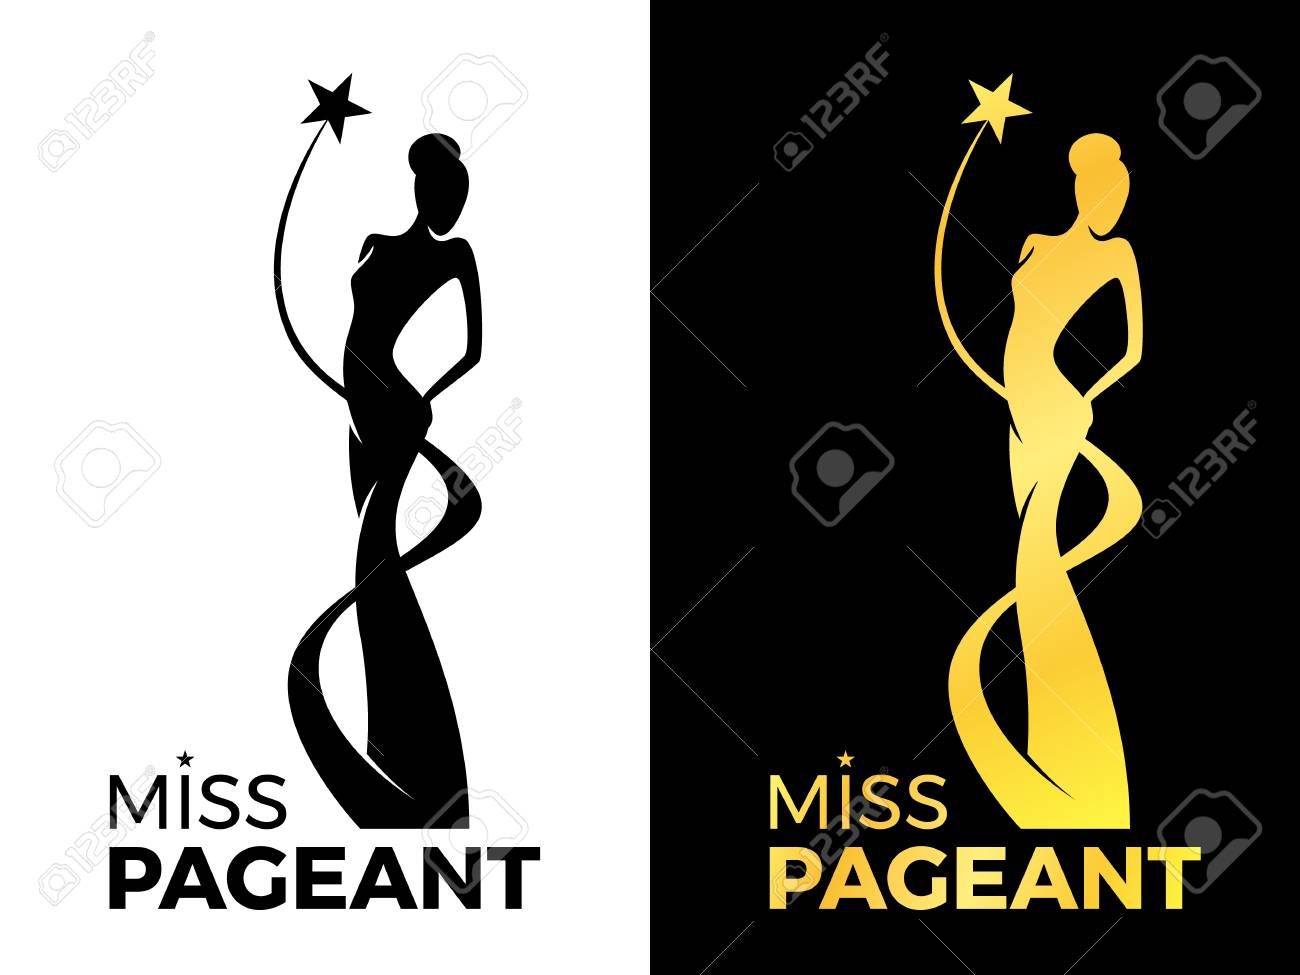 Miss lady pageant sign with queen wears evening gown and star around lady queen vector design - 109970199